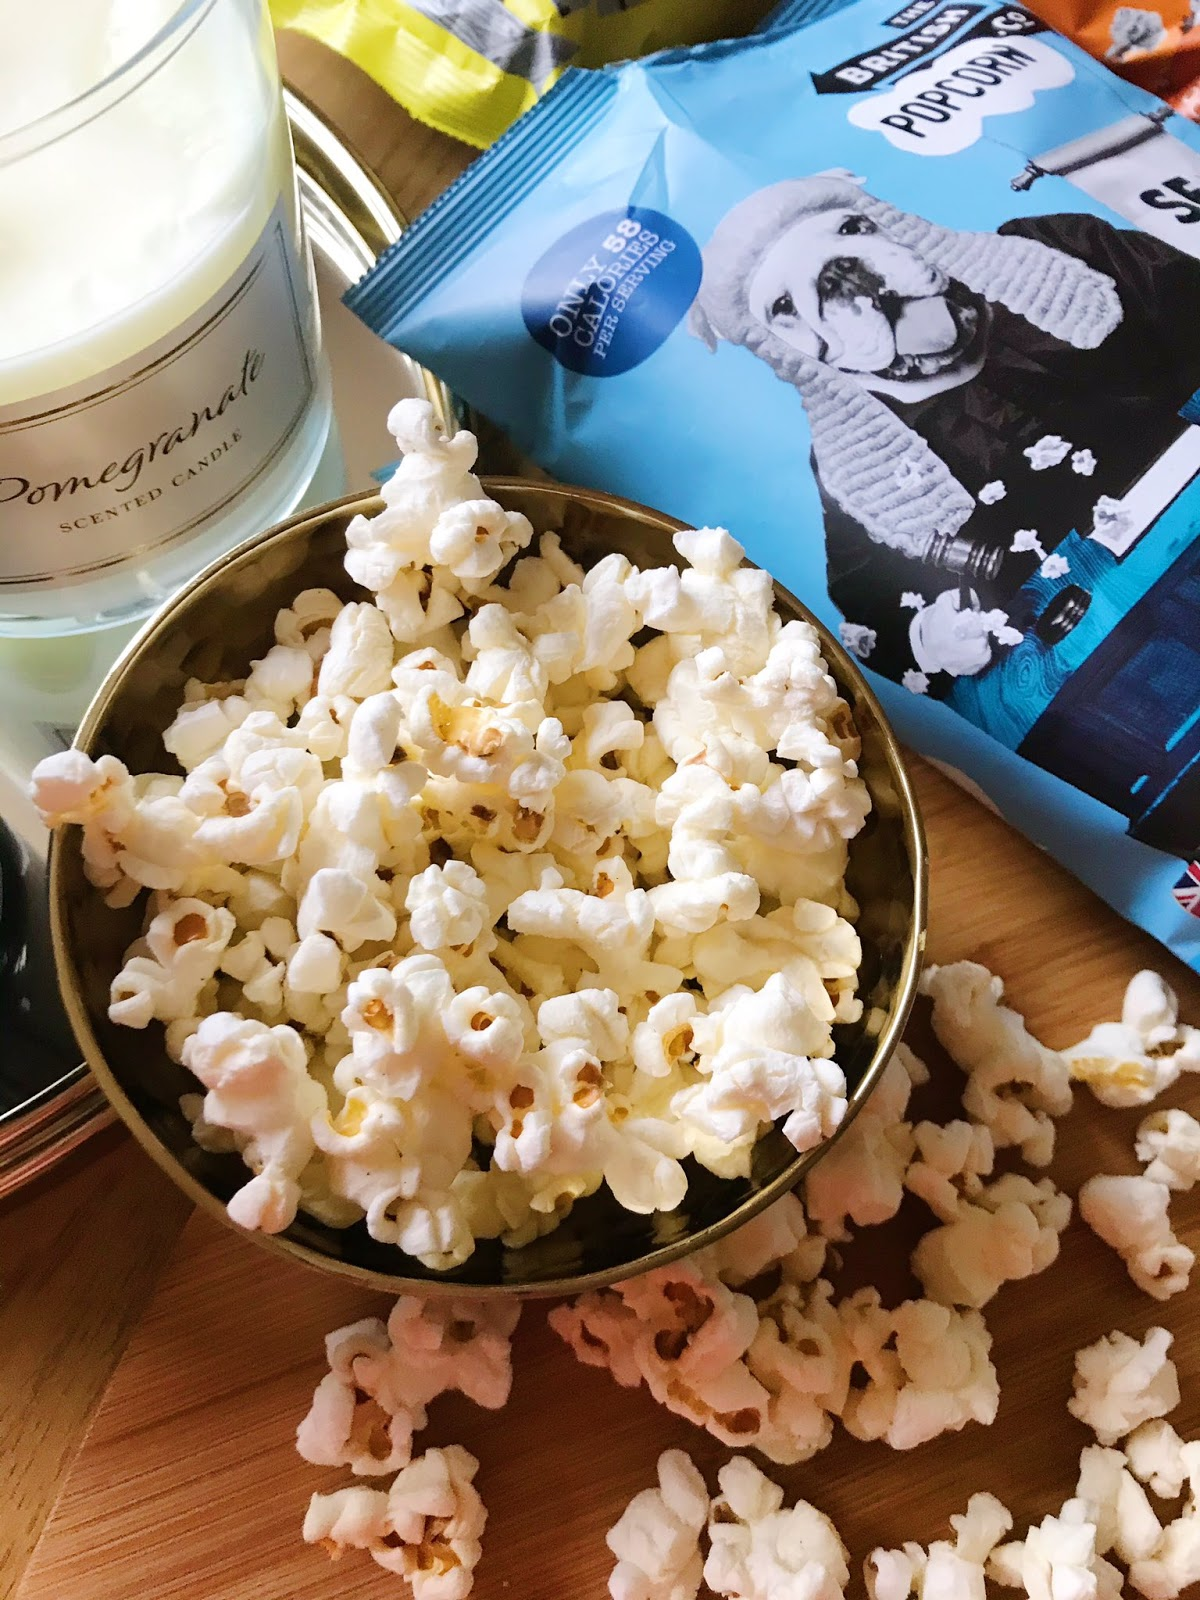 bags of popcorn from The British Popcorn Co, salted popcorn in gold bowl on chopping board